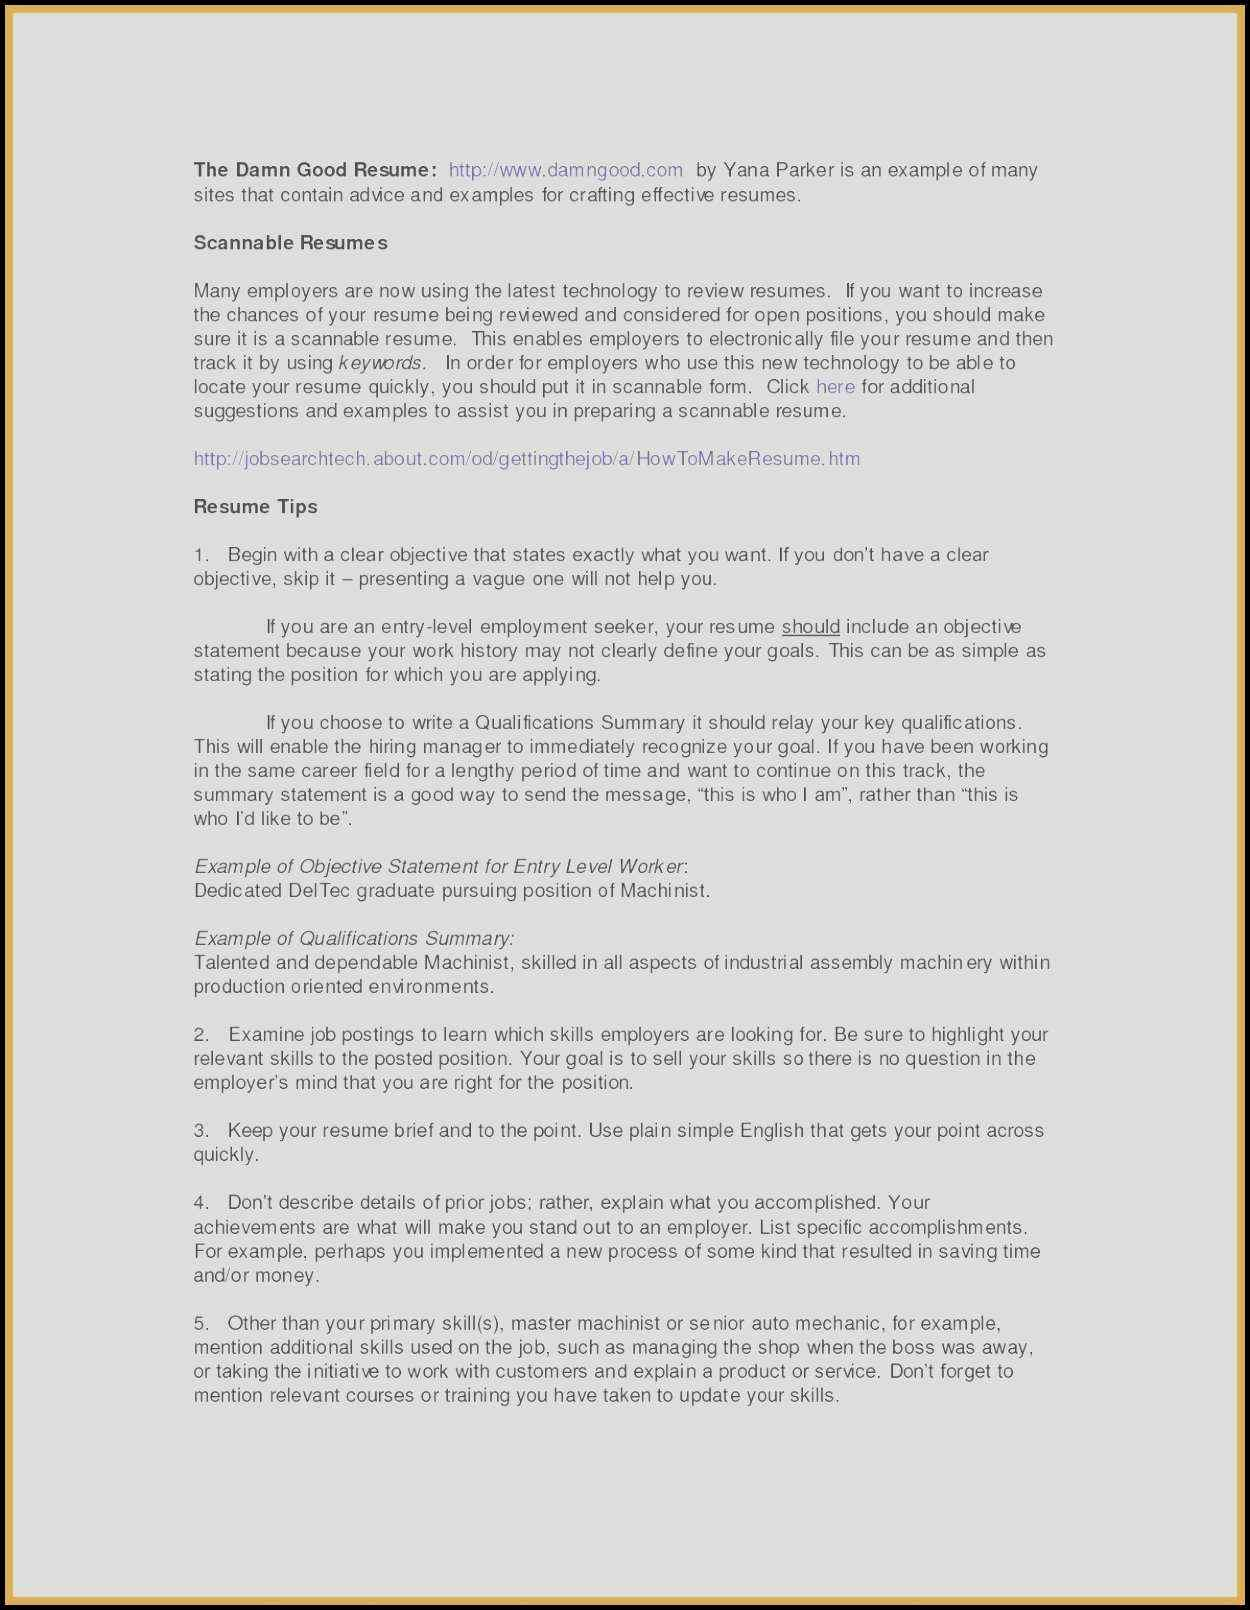 Core Competencies Resume Examples - Core Petencies Resume Examples Awesome Sample Executive Resume